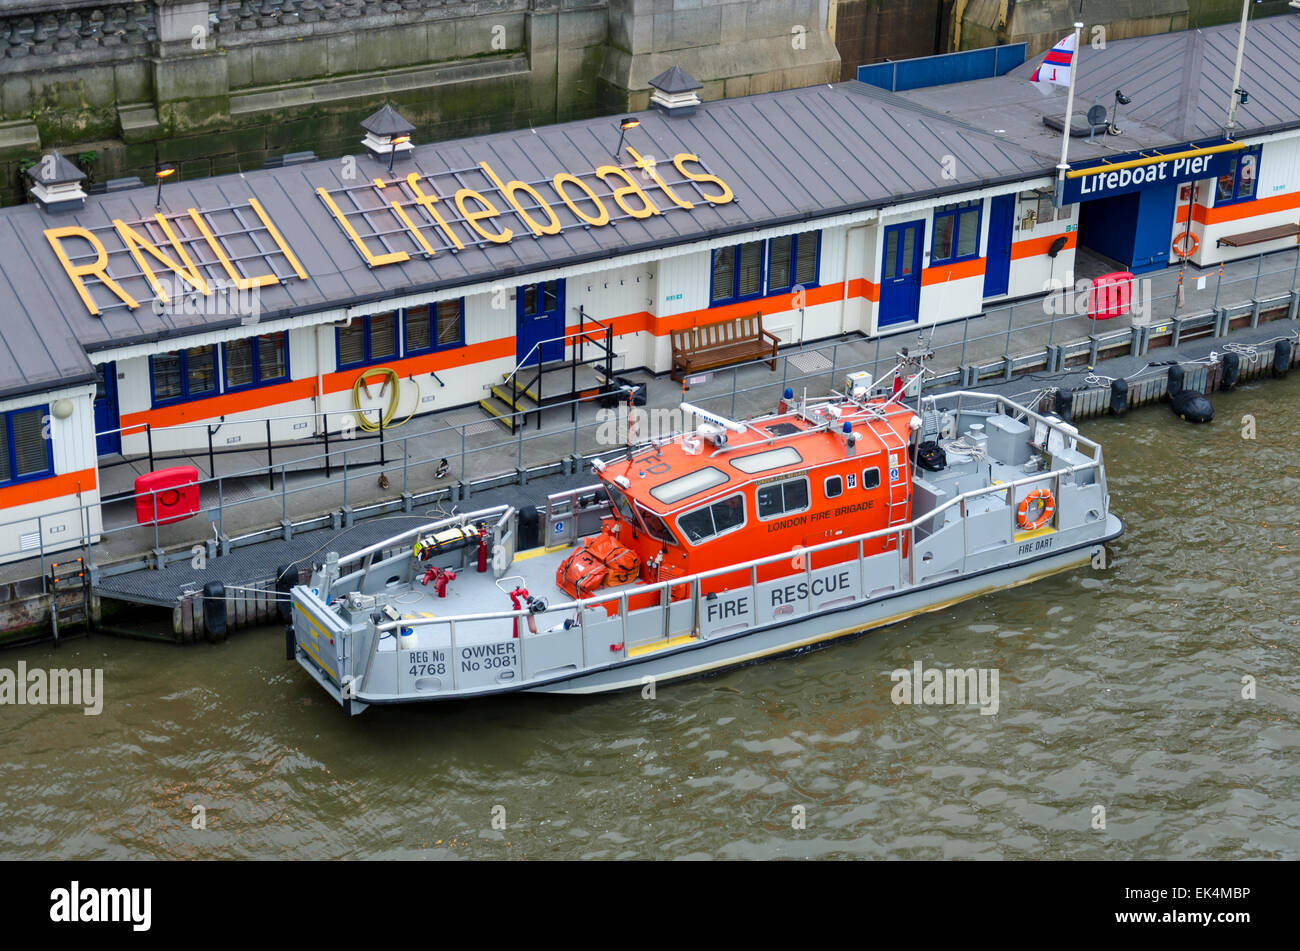 RNLI Lifeboats on the Thames, London, UK - Stock Image